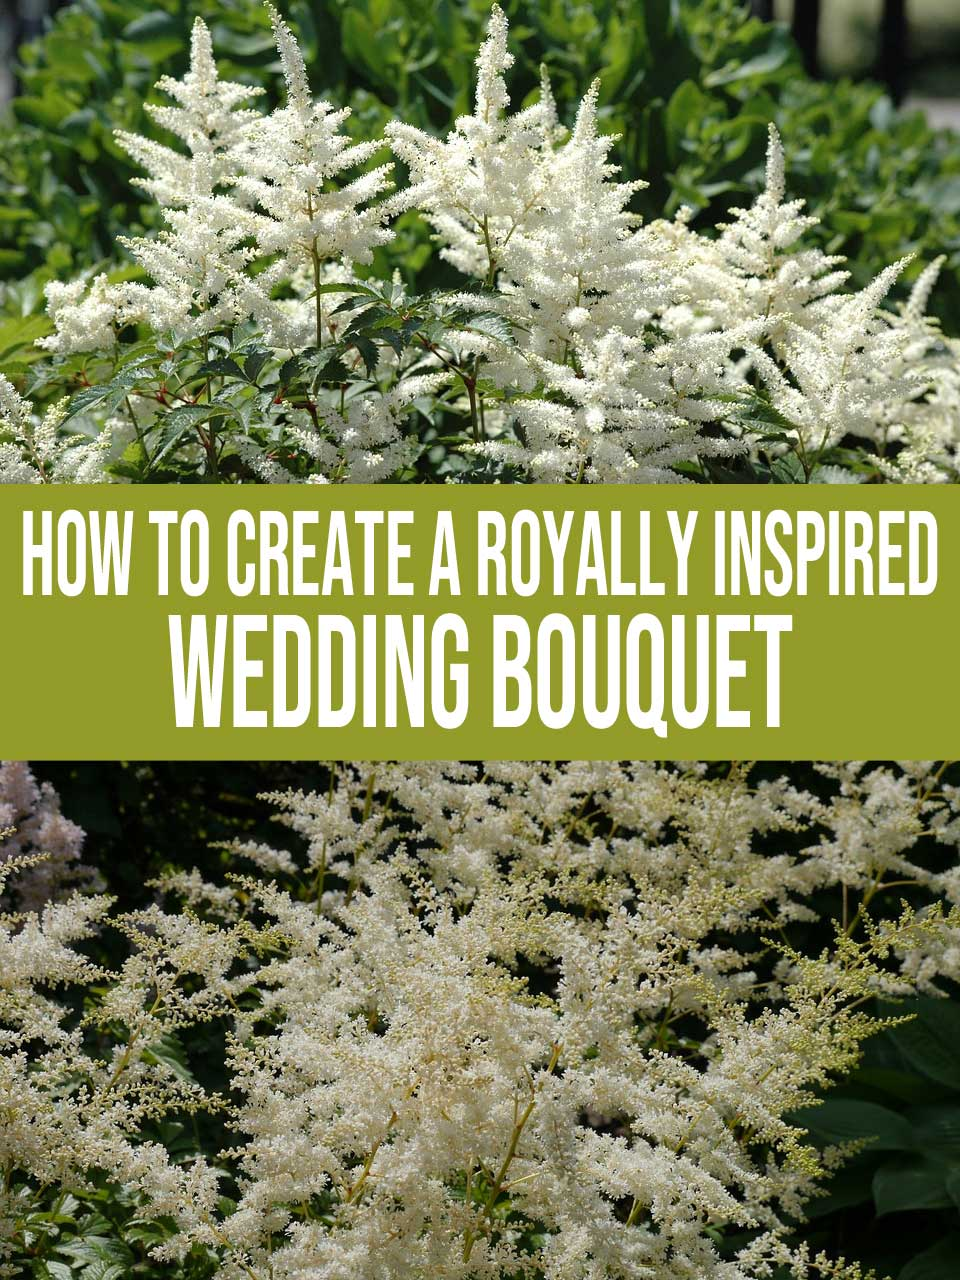 royally inspired wedding bouquet